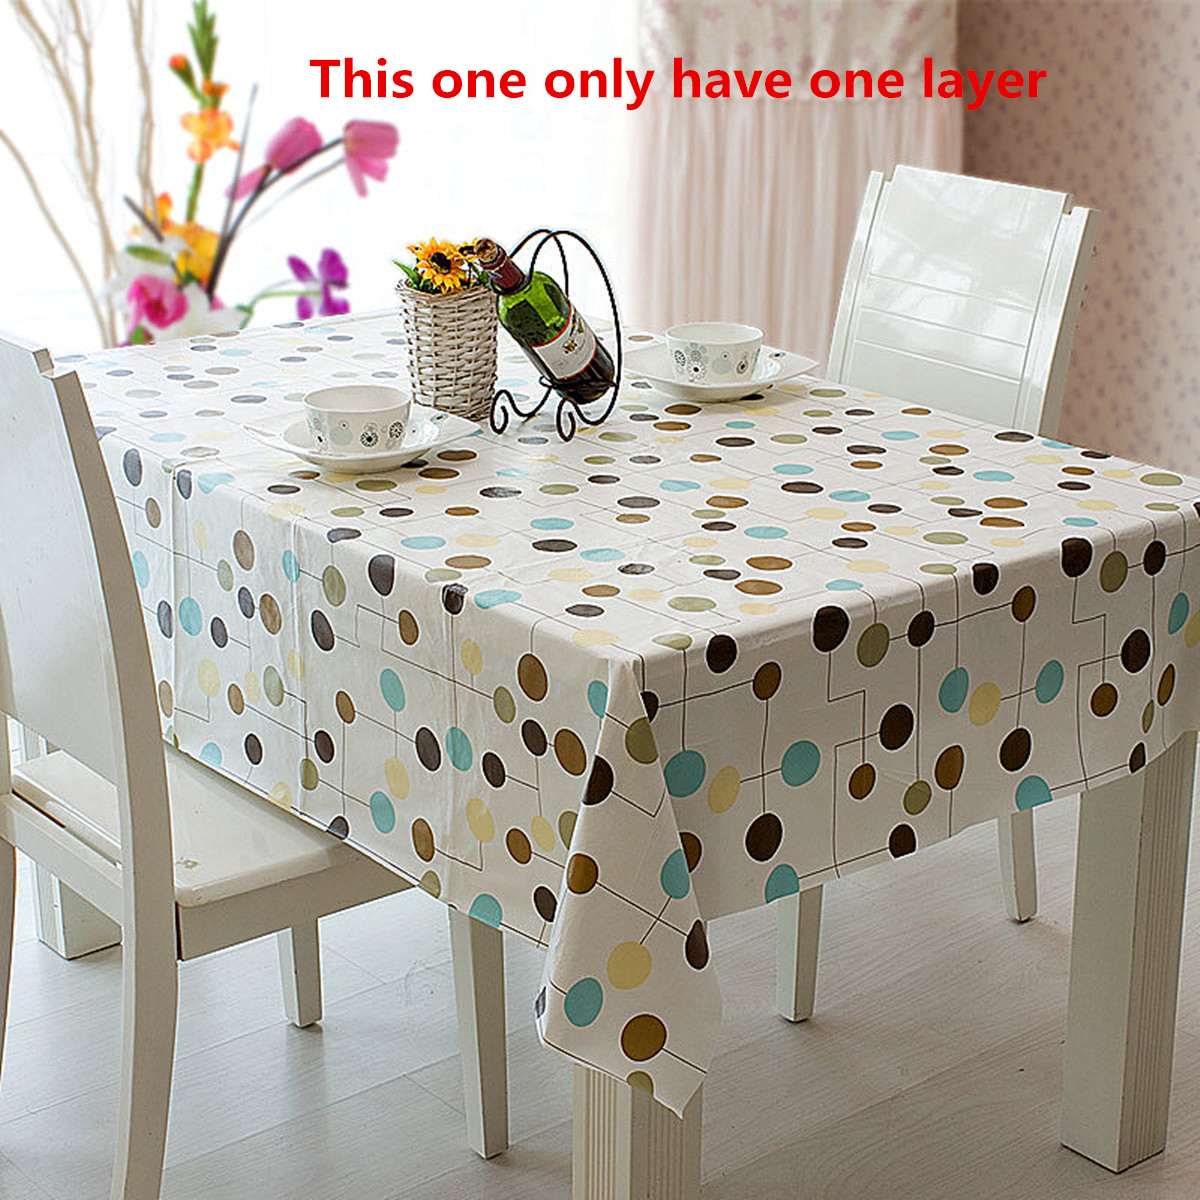 ... Wipe Clean Pvc Tablecloth Waterproof Grease Kitchen Table ...